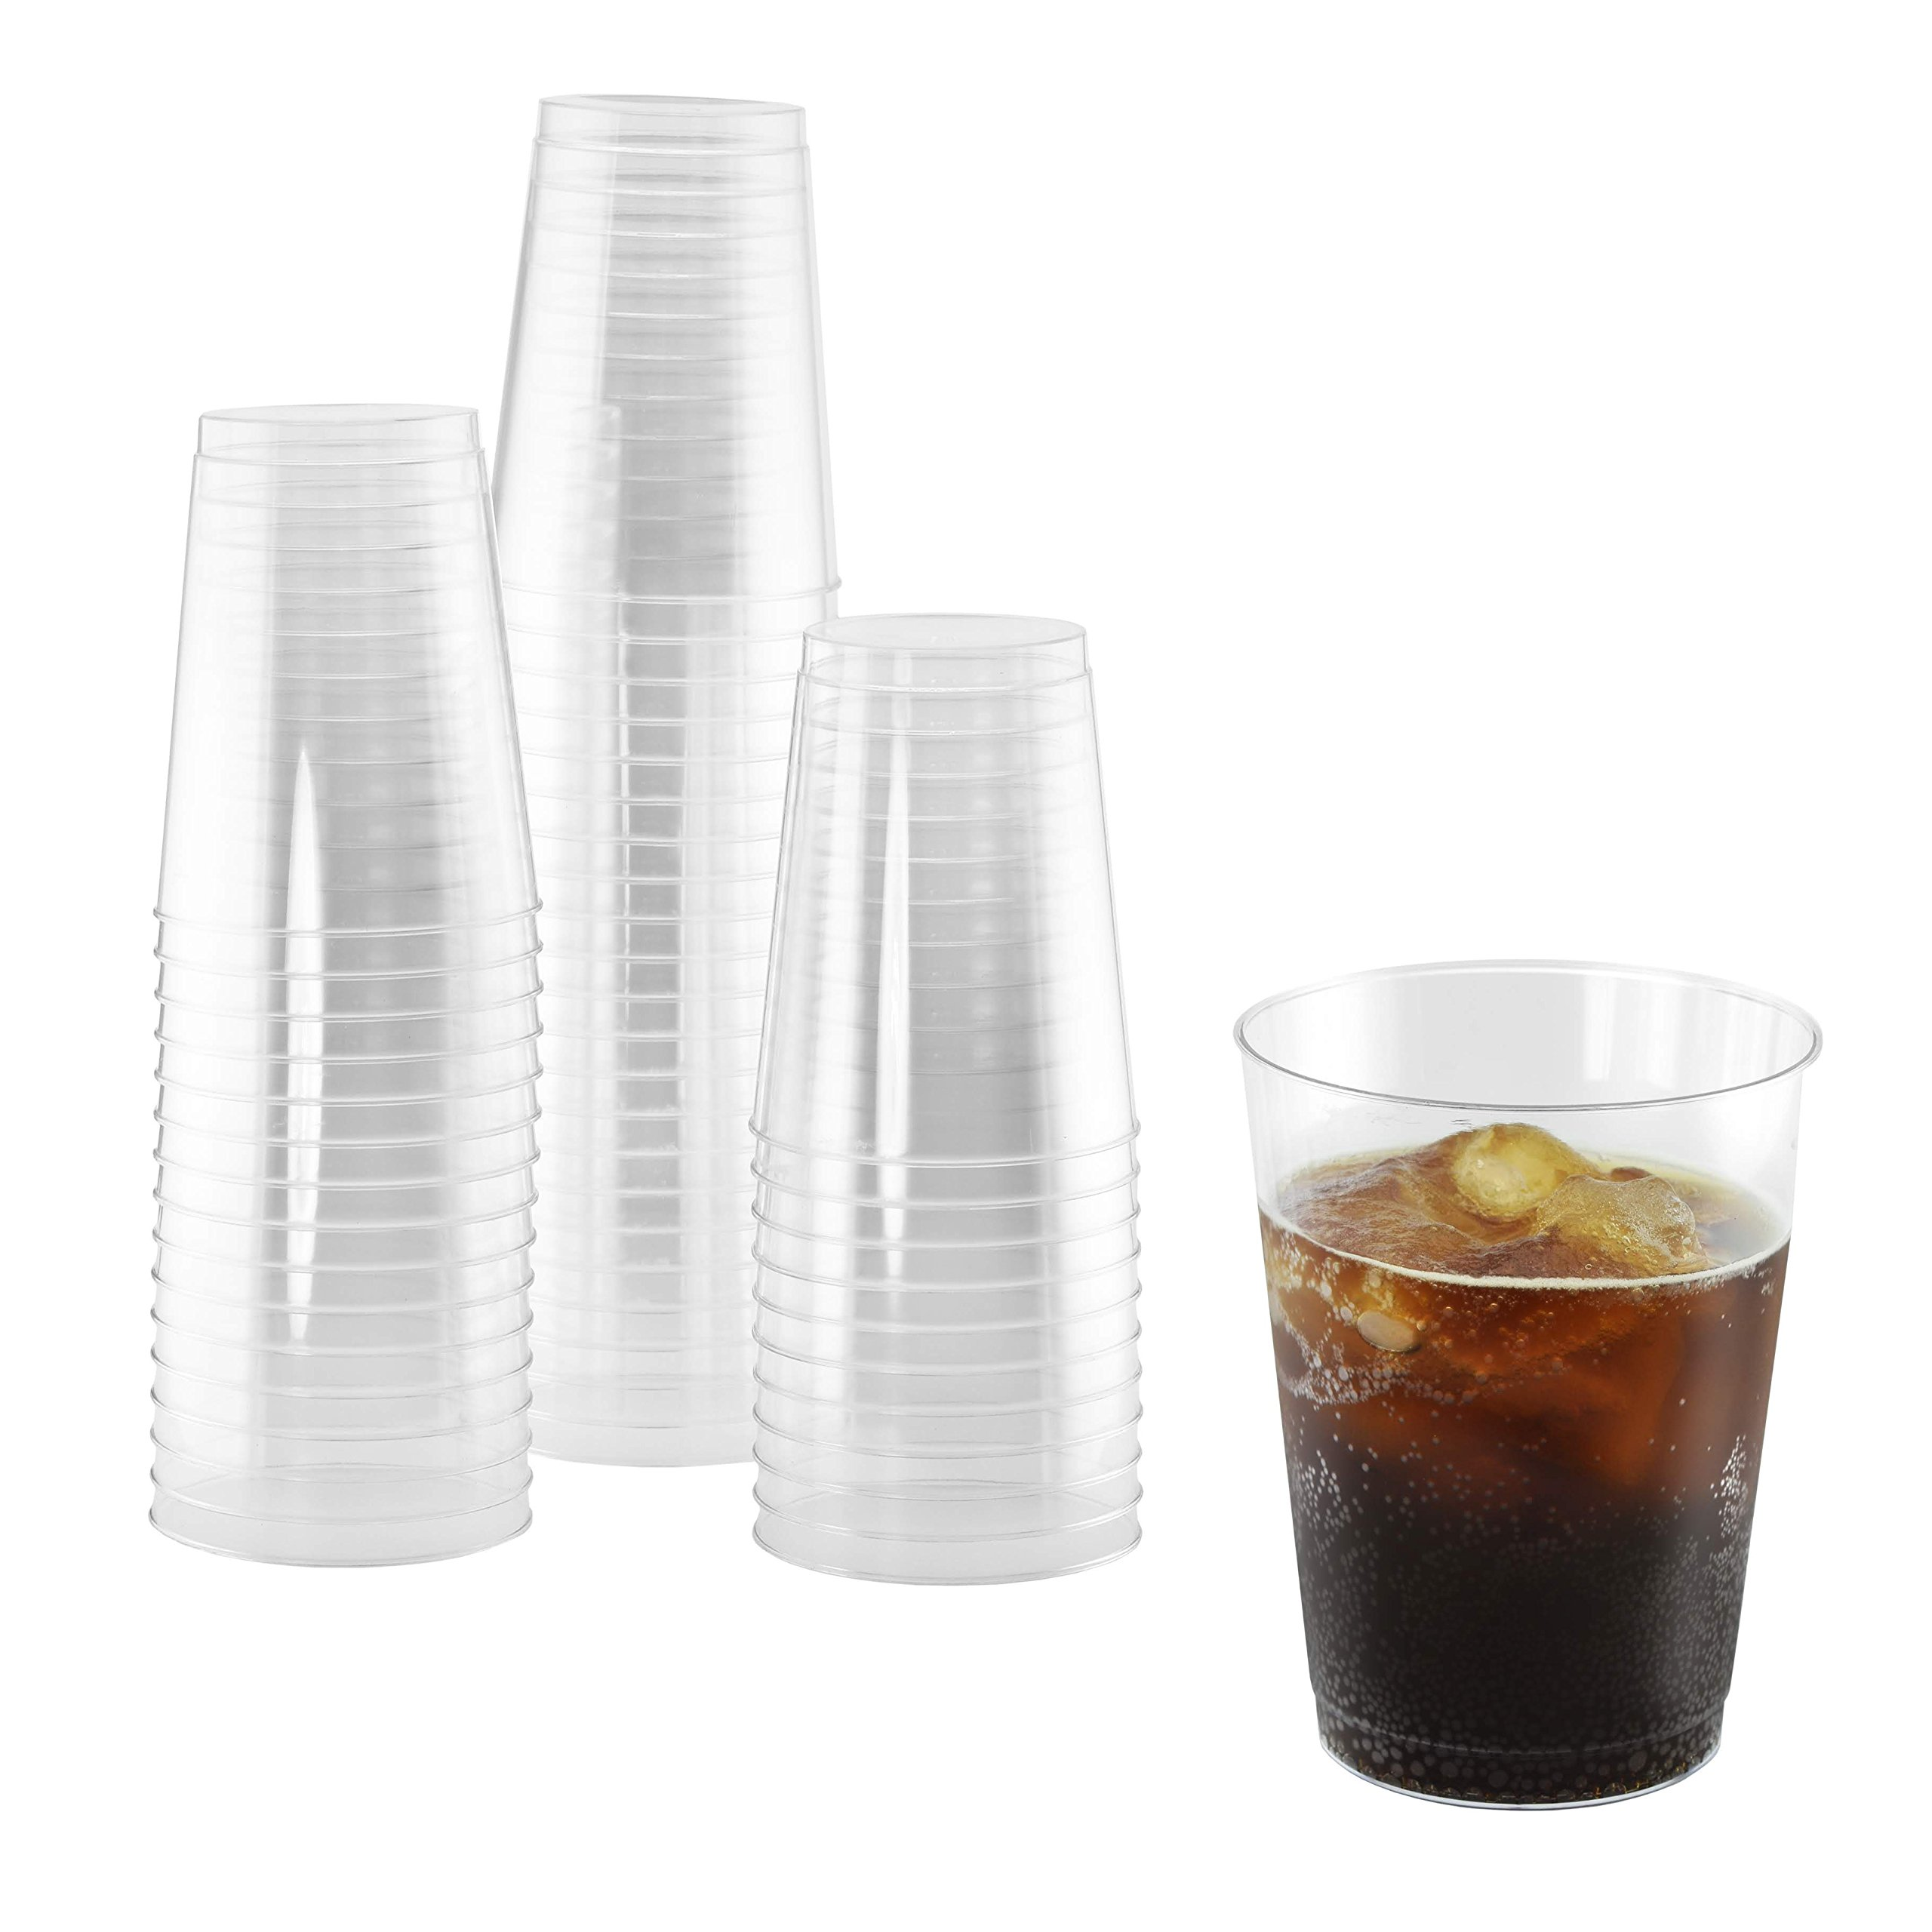 BloominGoods Clear Plastic Cups 10-Ounce Tumblers - Fancy Disposable Plastic Wedding Cups Tumblers for Party Holiday and Occasions (50-Pack)